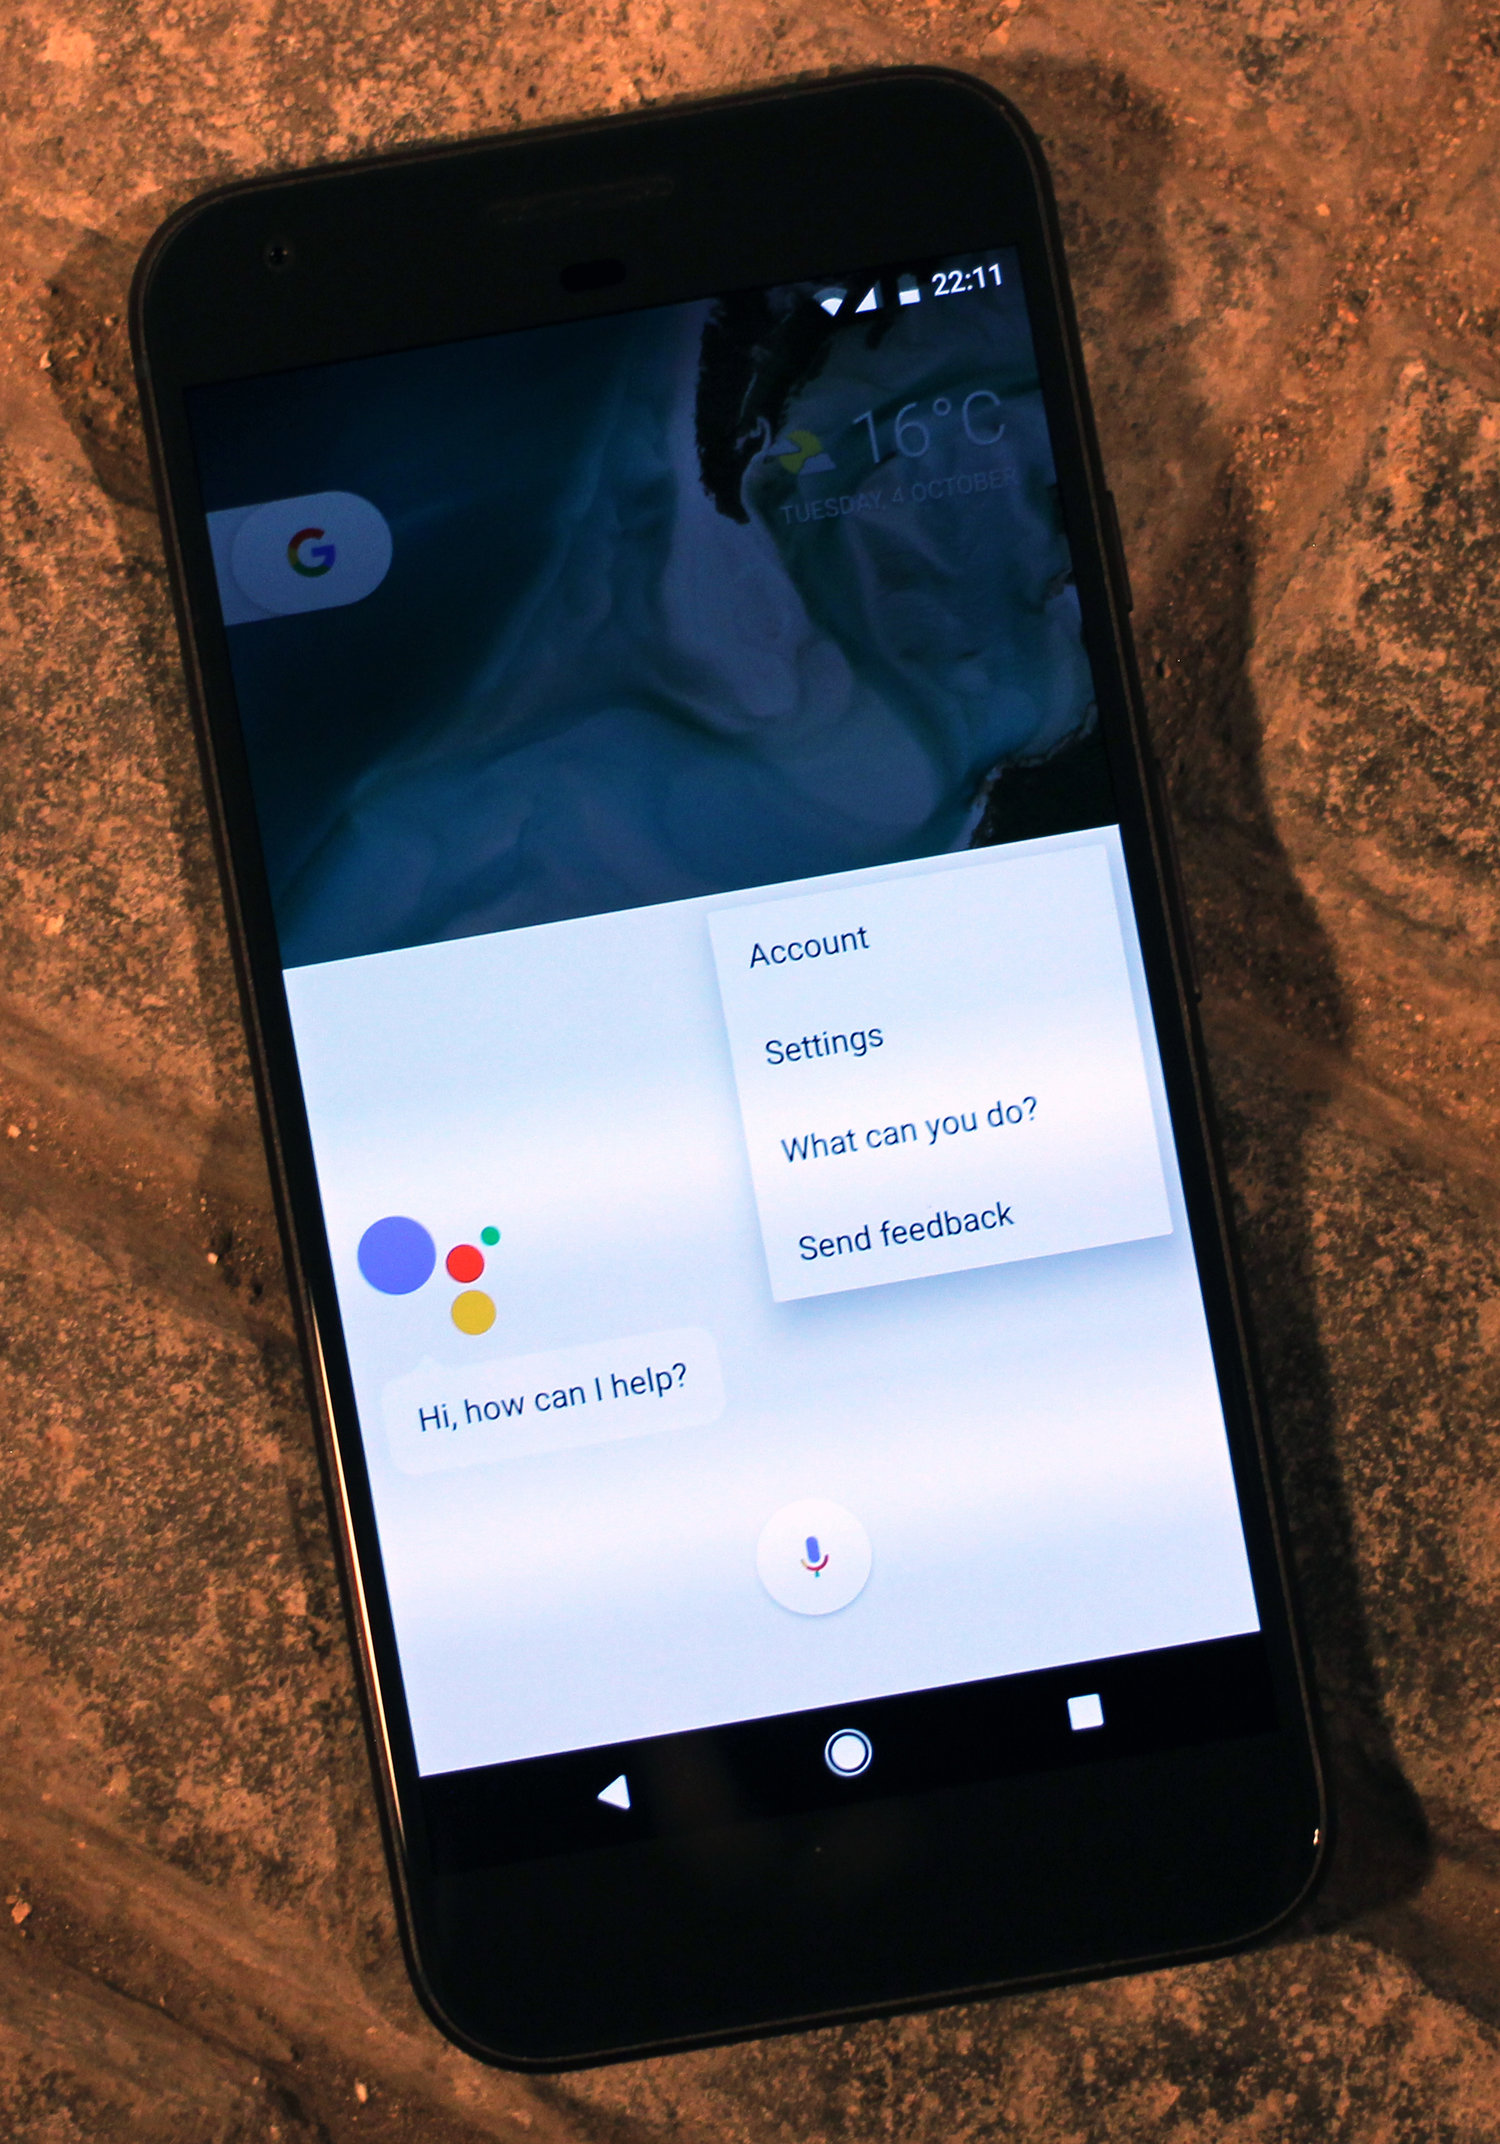 5. Google's Real-Time Speech Recognition AI Can Run Offline On Pixel -